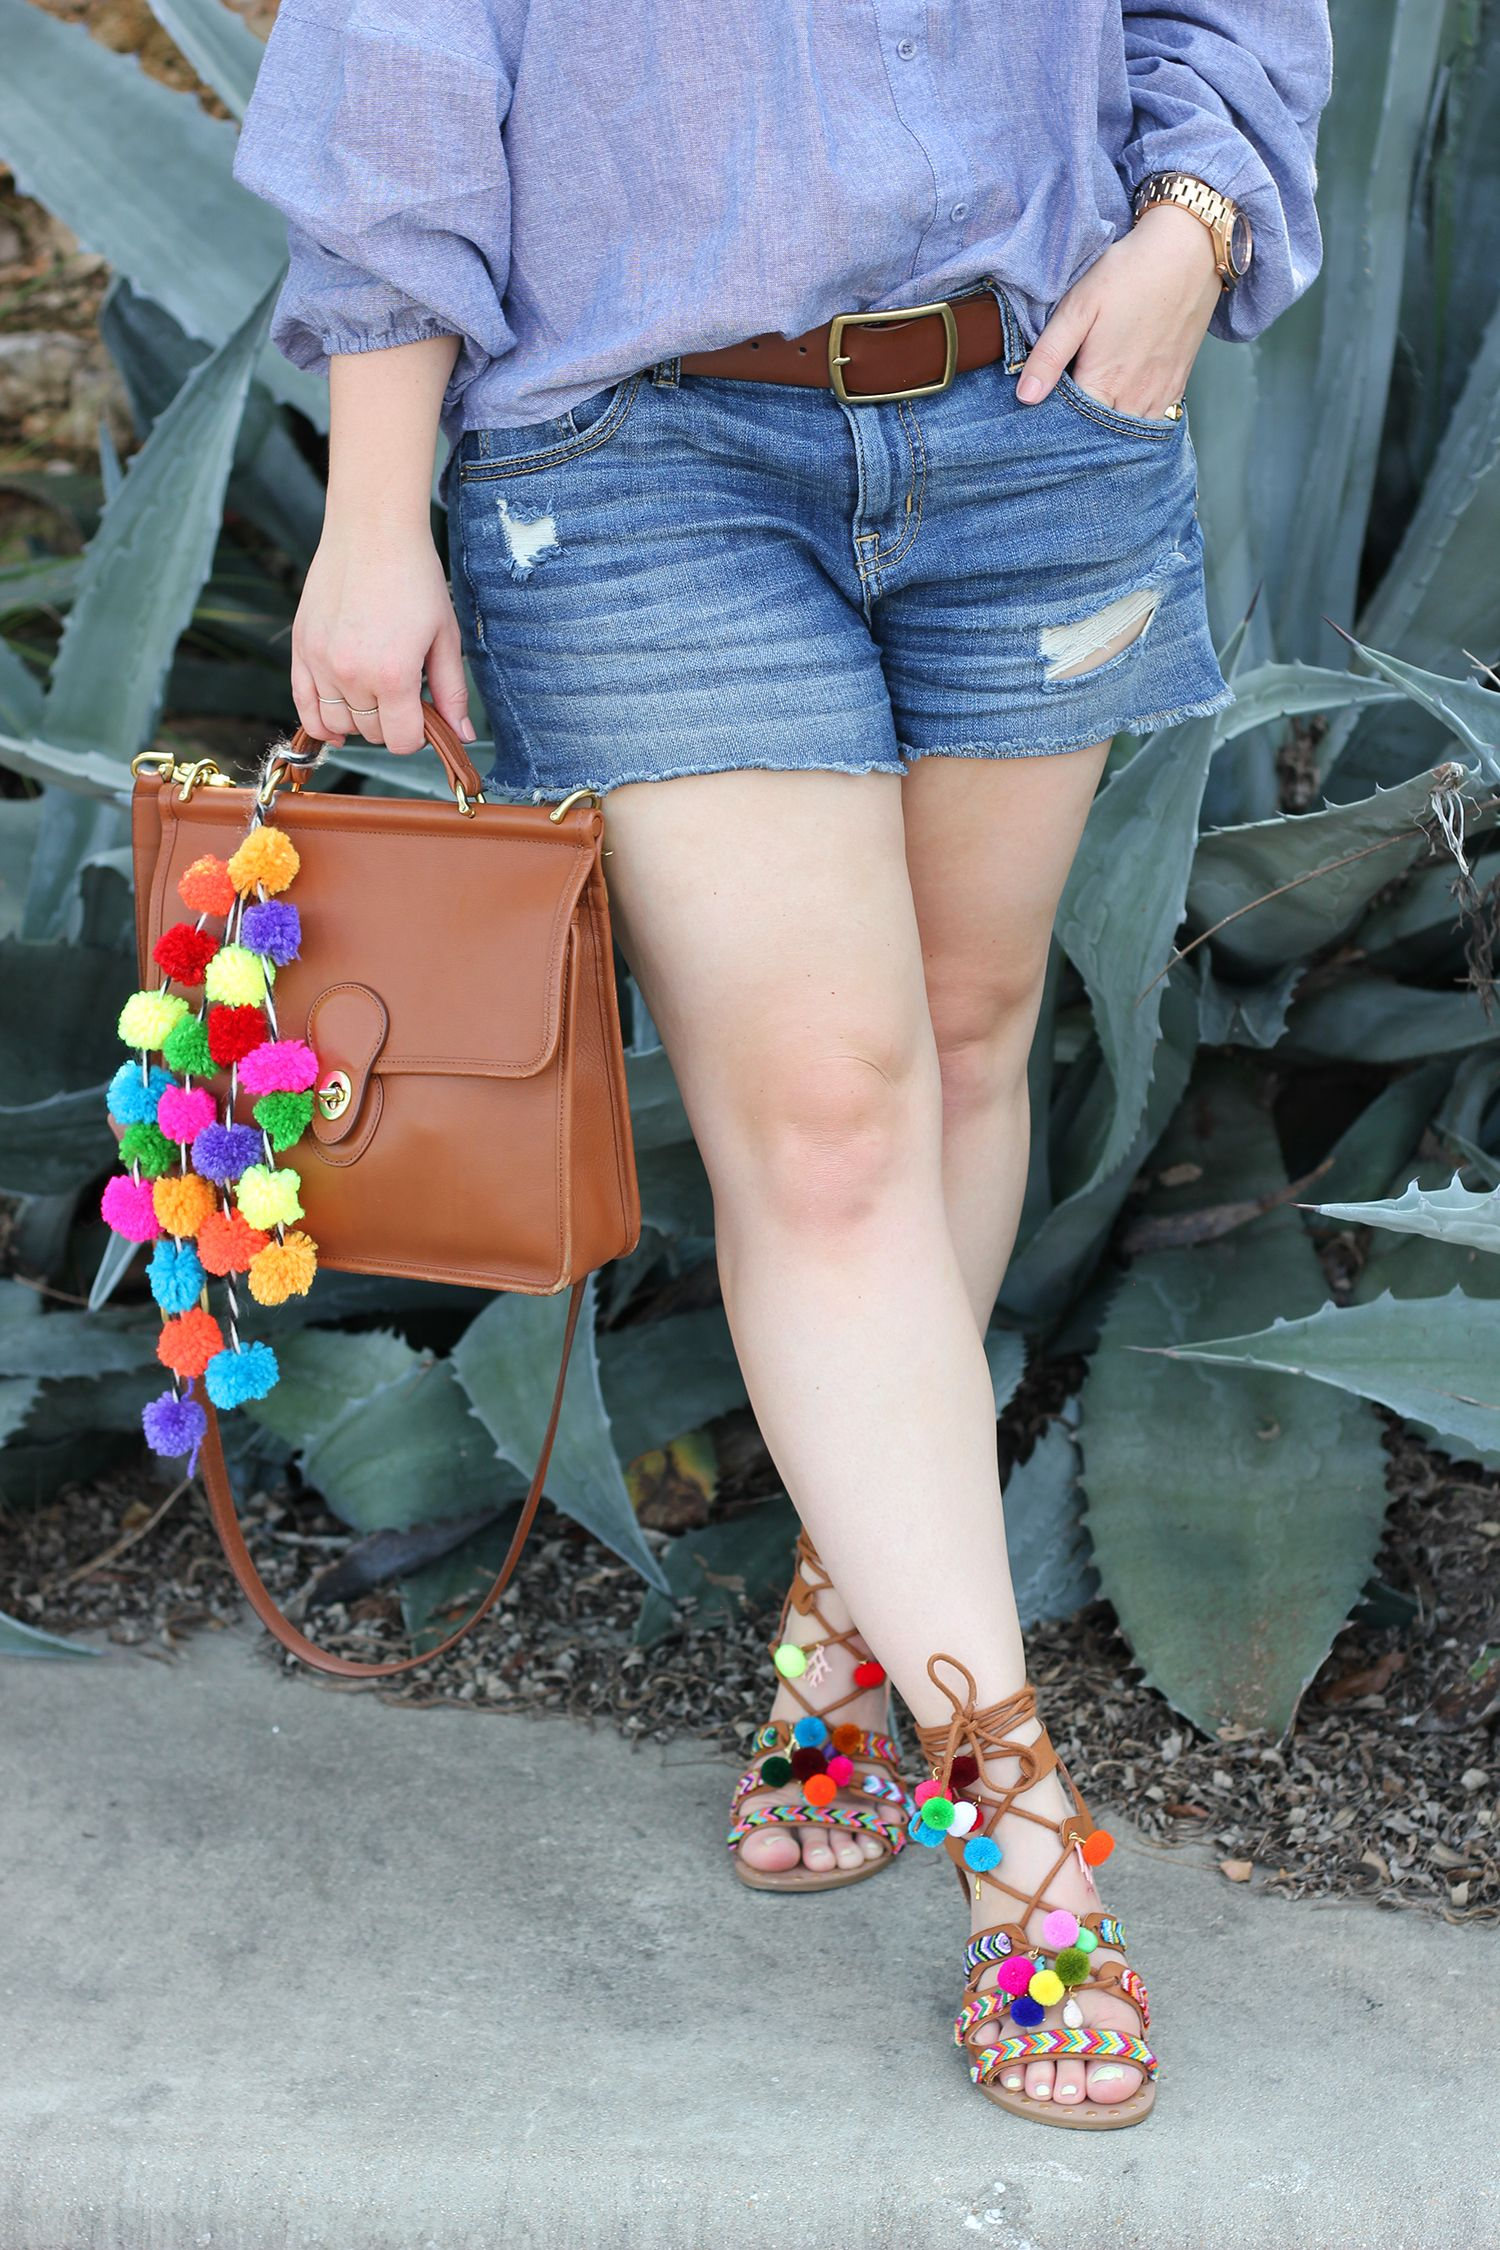 Dress up a pair of plain tan sandals with colorful pompoms and embroidery thread for a festive summer DIY!